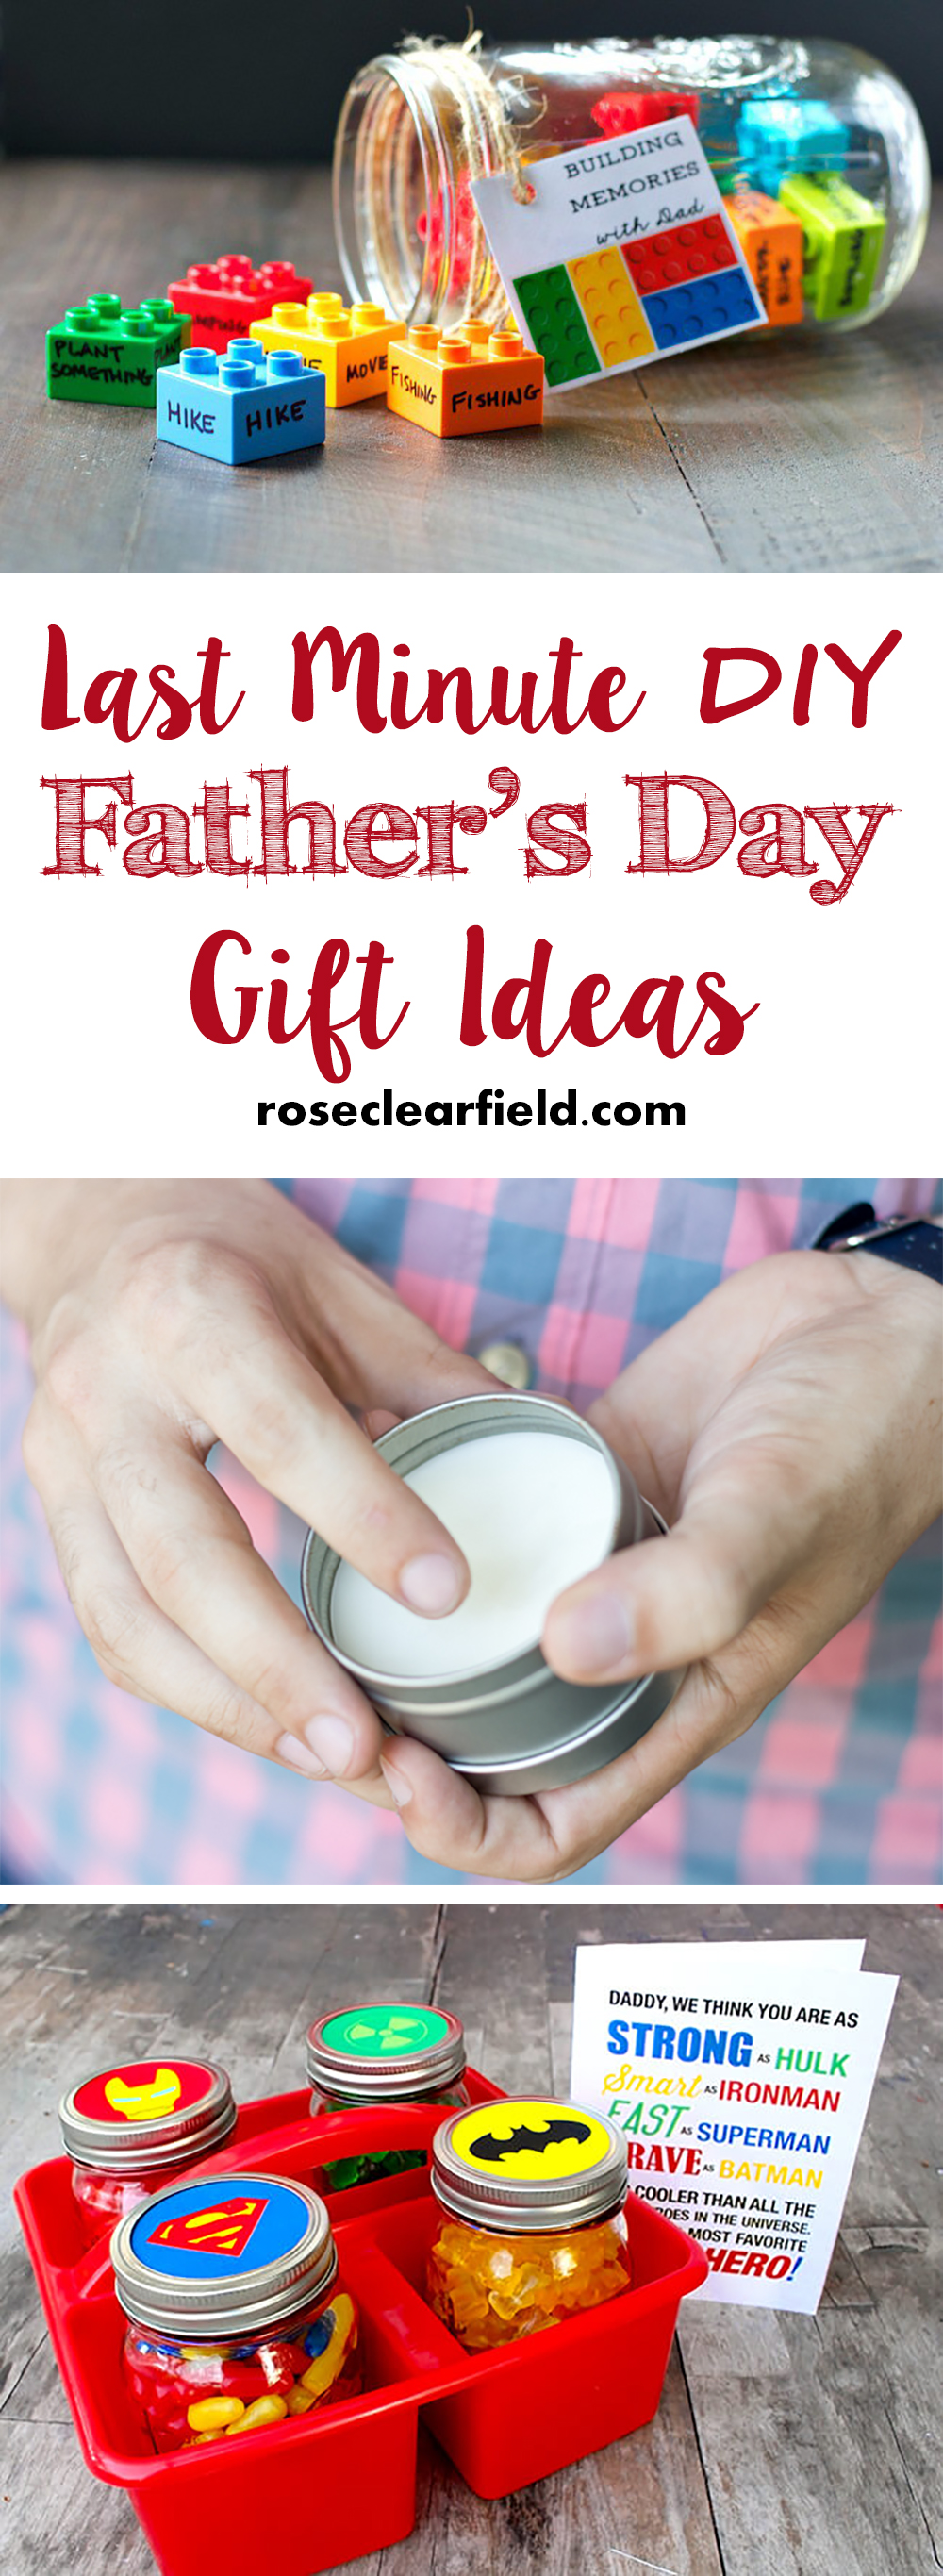 last minute diy father 39 s day gift ideas rose clearfield